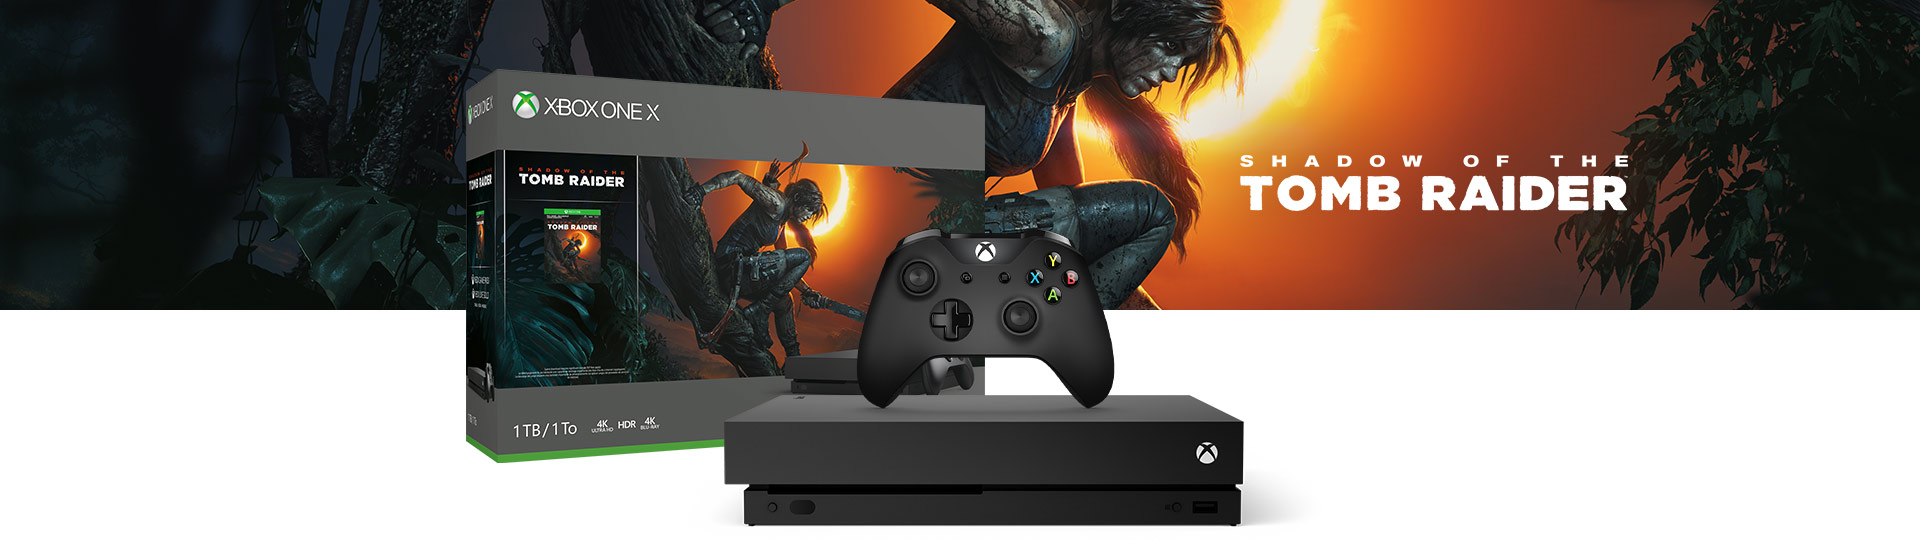 Xbox One X et manette à côté de la boîte de produit du pack Xbox One X (1 To) + Shadow of the Tomb Raider.